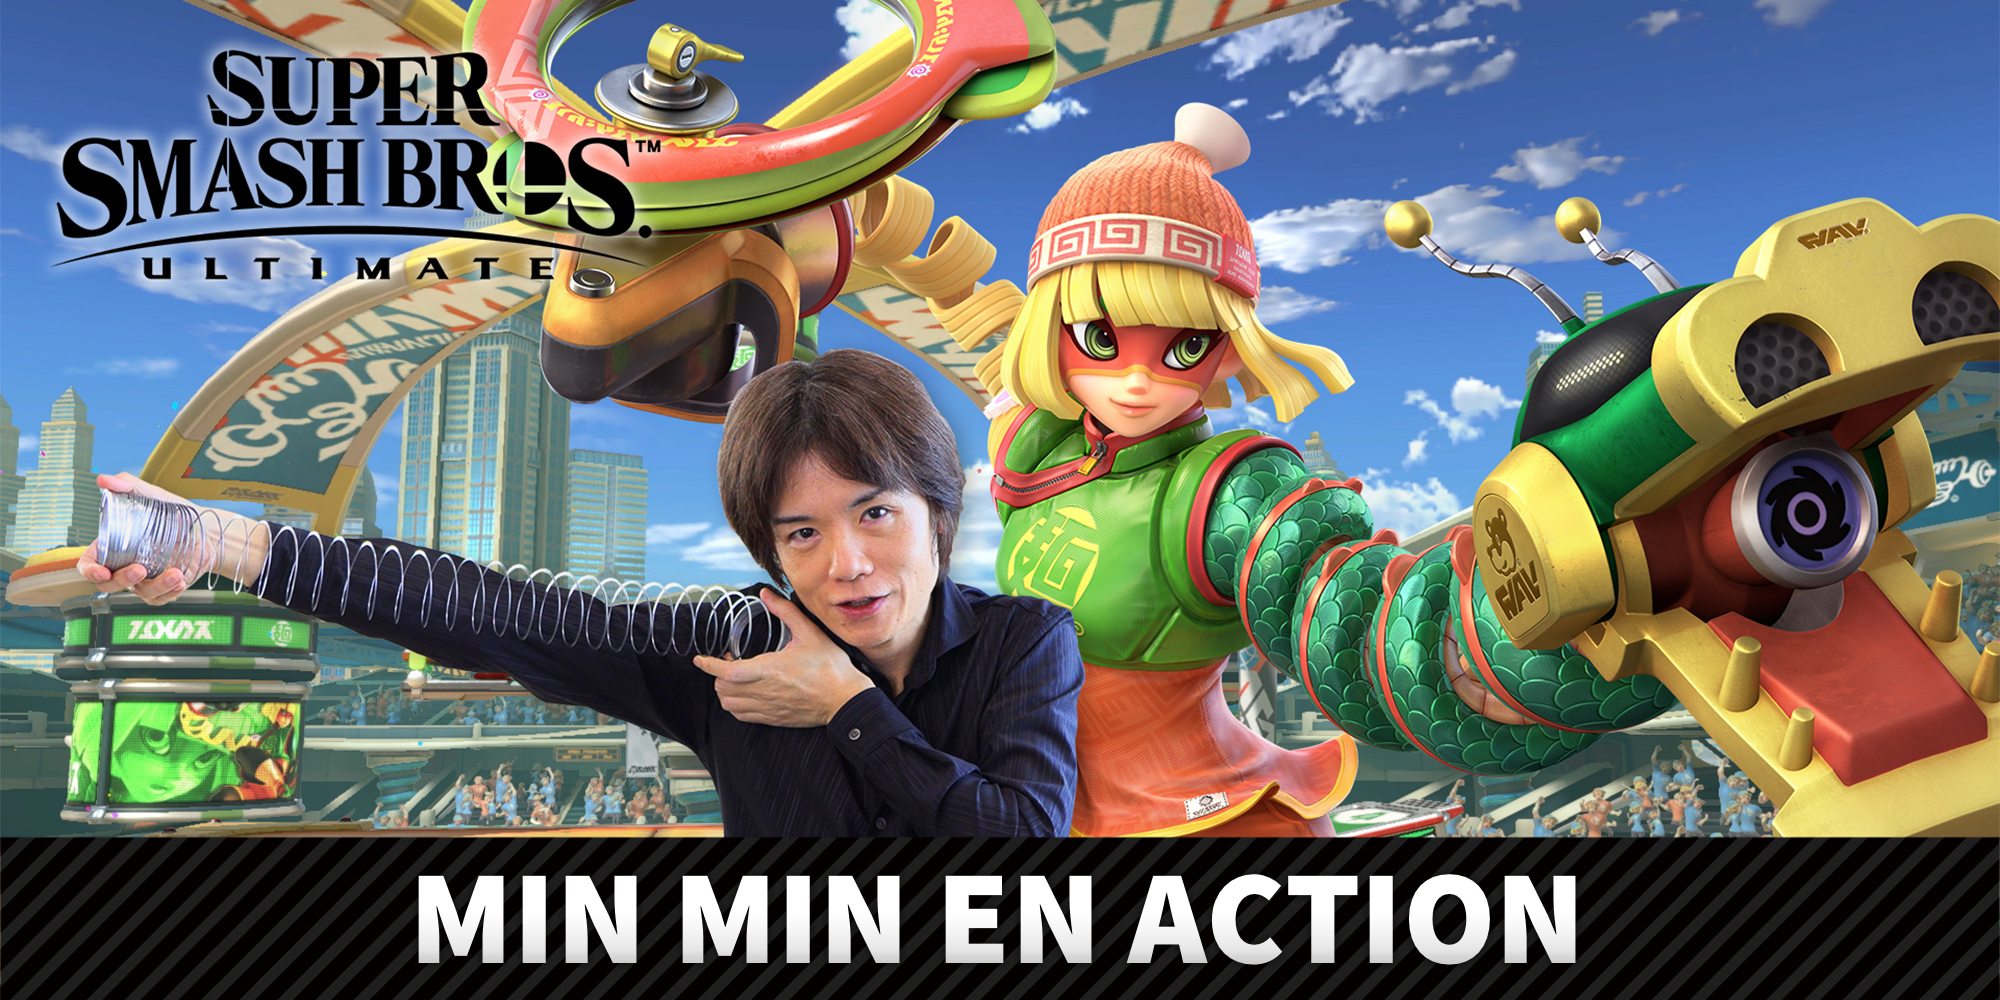 Min Min du jeu ARMS rejoint le casting de Super Smash Bros. Ultimate le 30 juin !